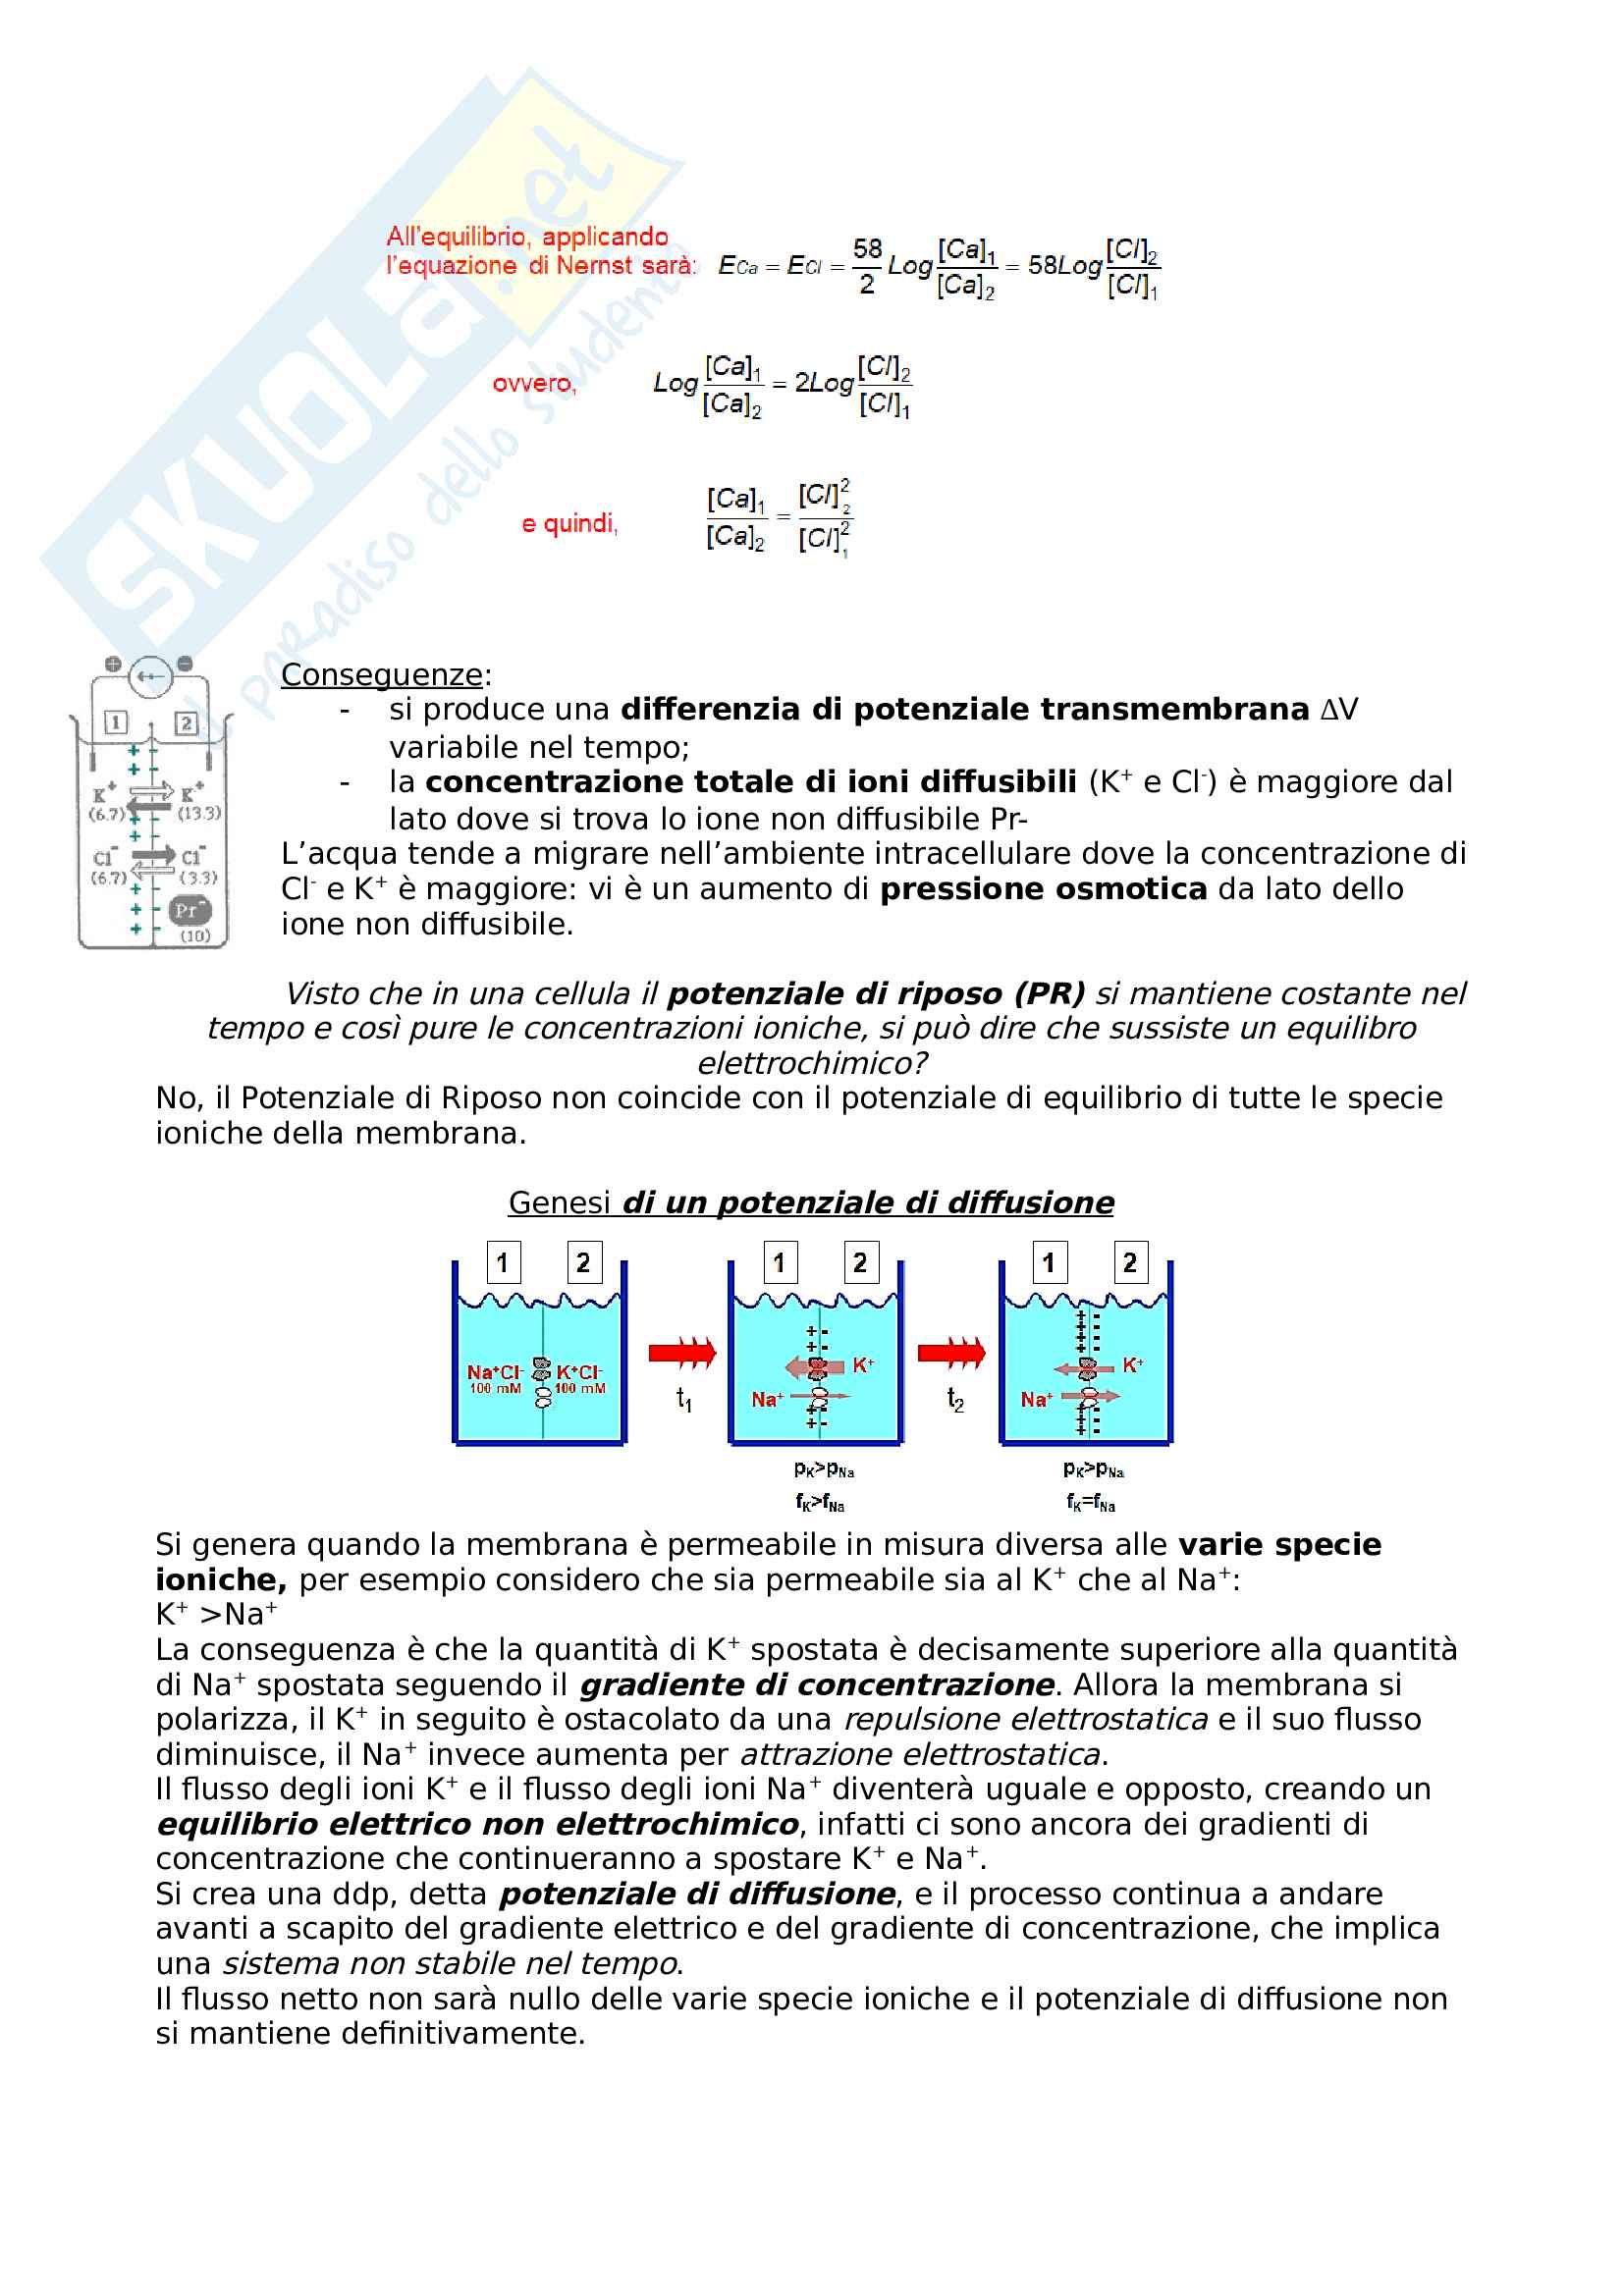 Fisiologia cellulare Pag. 21